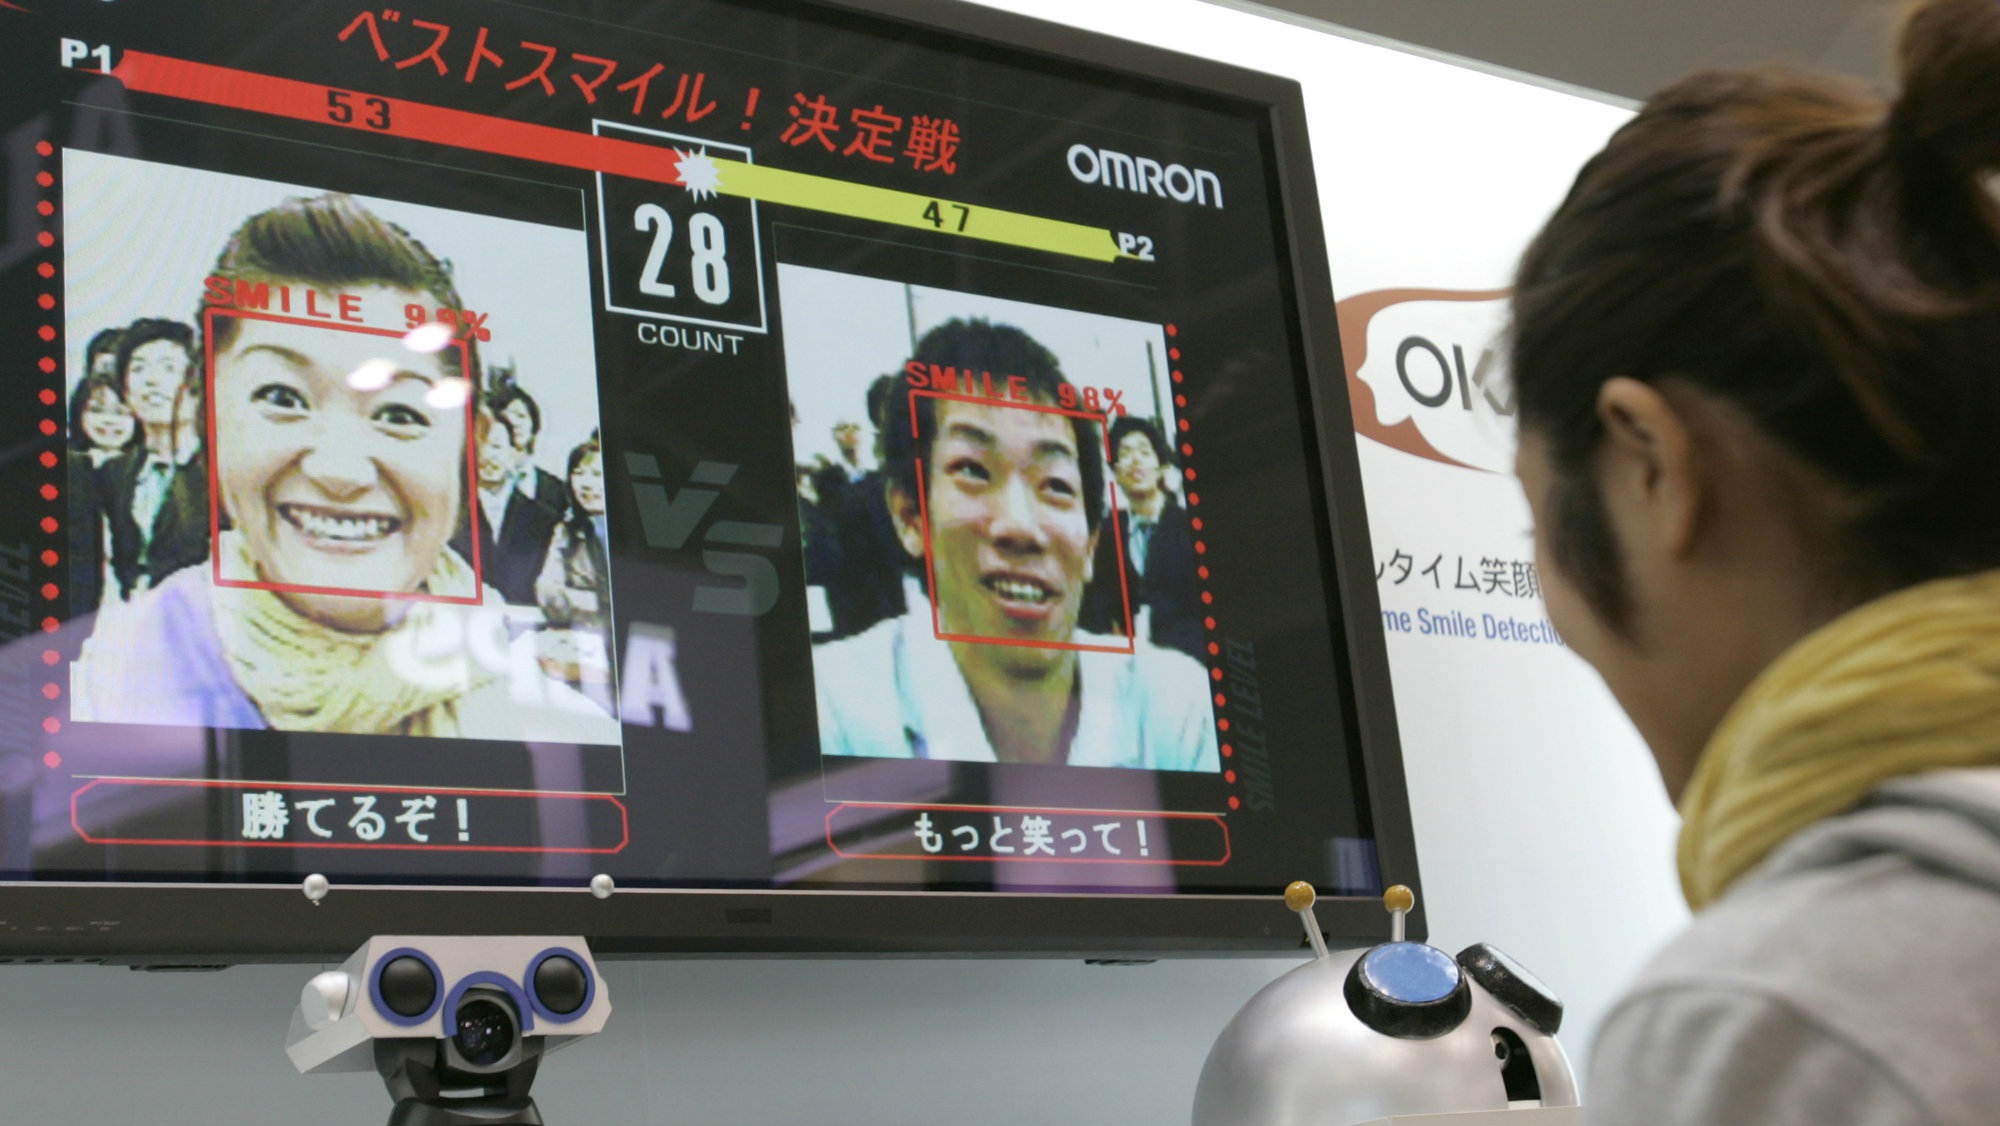 Visitors at the CEATEC technology trade show compete in a 2007 smiling contest judged by face-recognition in Japan.